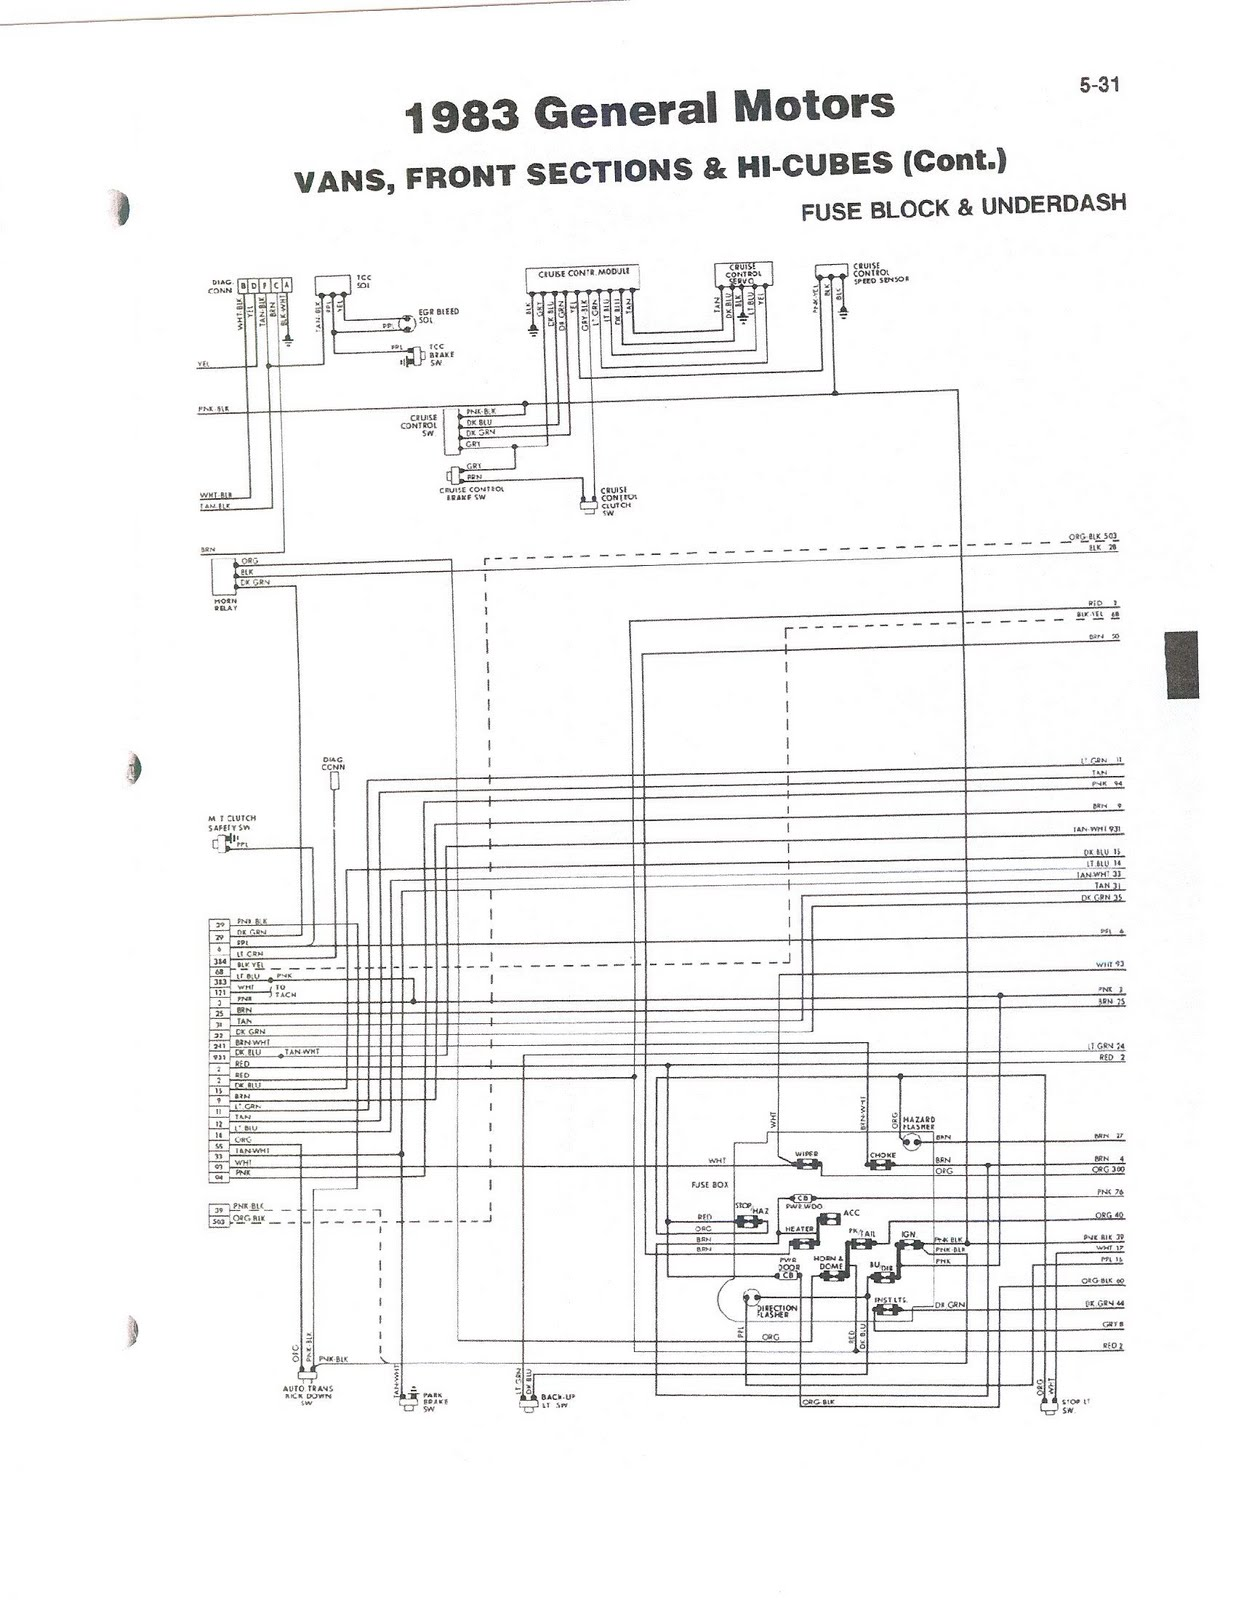 1983 fleetwood pace arrow owners manuals wireing diagram 83 gm van front section  u0026 hi cube Opel Omega Wiring Diagrams